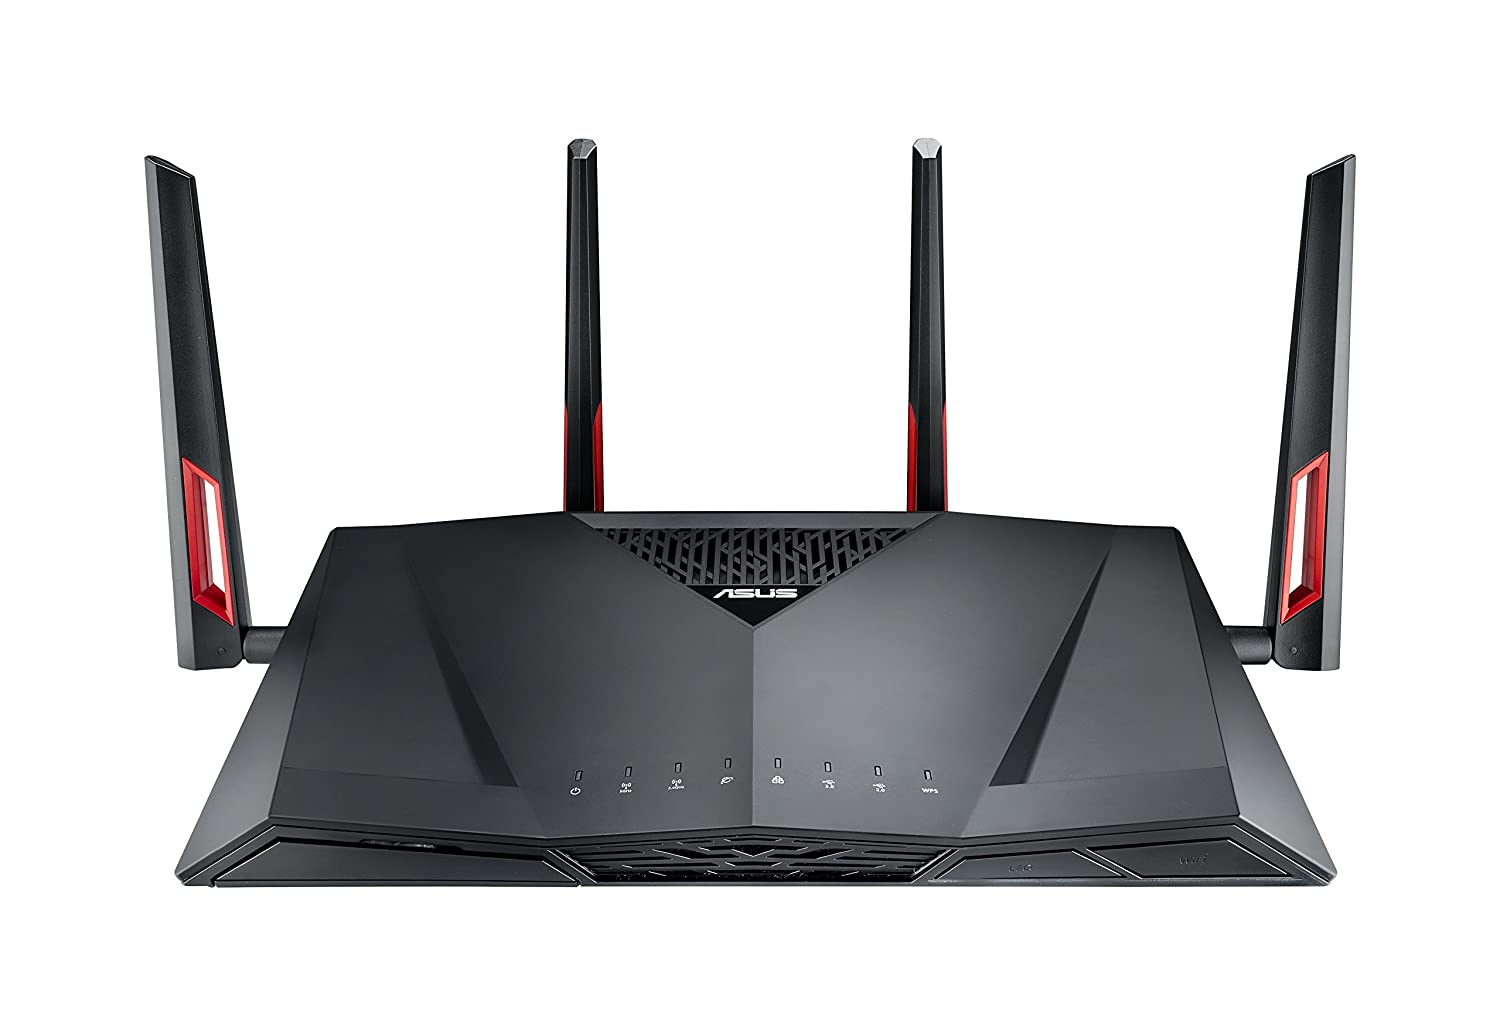 Best for Security and Gaming- Asus RT-AC88U Wireless Router